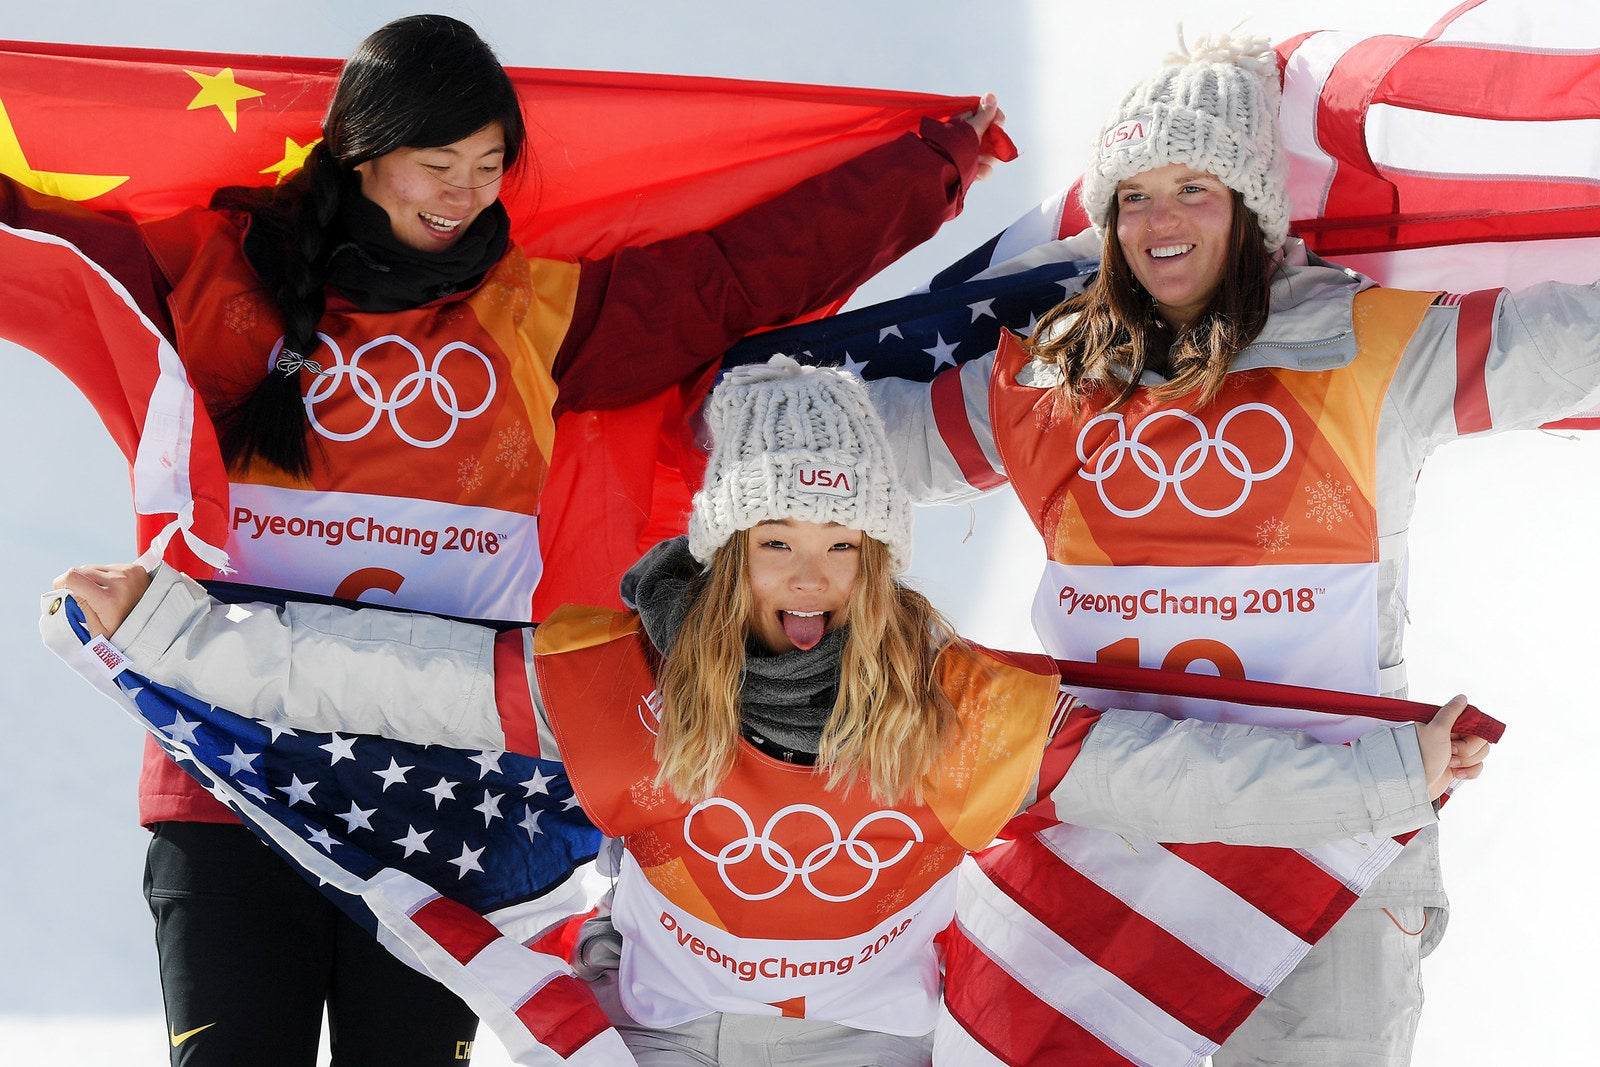 From left: Silver medalist Jiayu Liu of China, gold medalist Chloe Kim of the United States, and bronze medalist Arielle Gold of the United States pose during the victory ceremony for the Snowboard Ladies' Halfpipe Final on day four of the PyeongChang 2018 Winter Olympic Games on Feb. 13, in Pyeongchang-gun, South Korea.